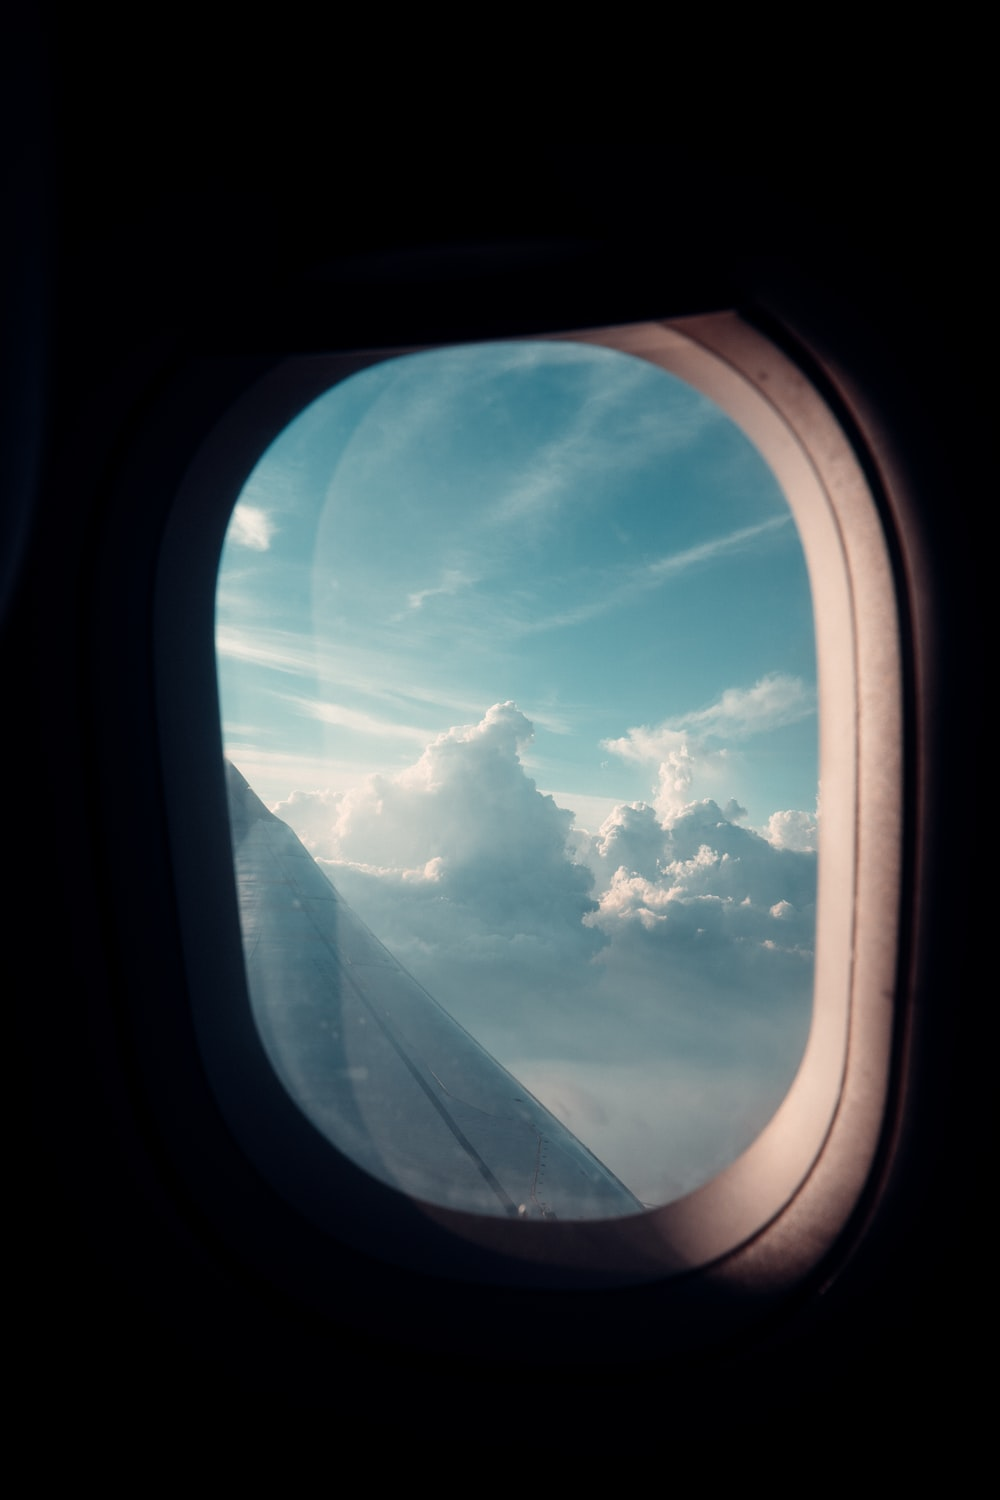 airplane window view of clouds during daytime